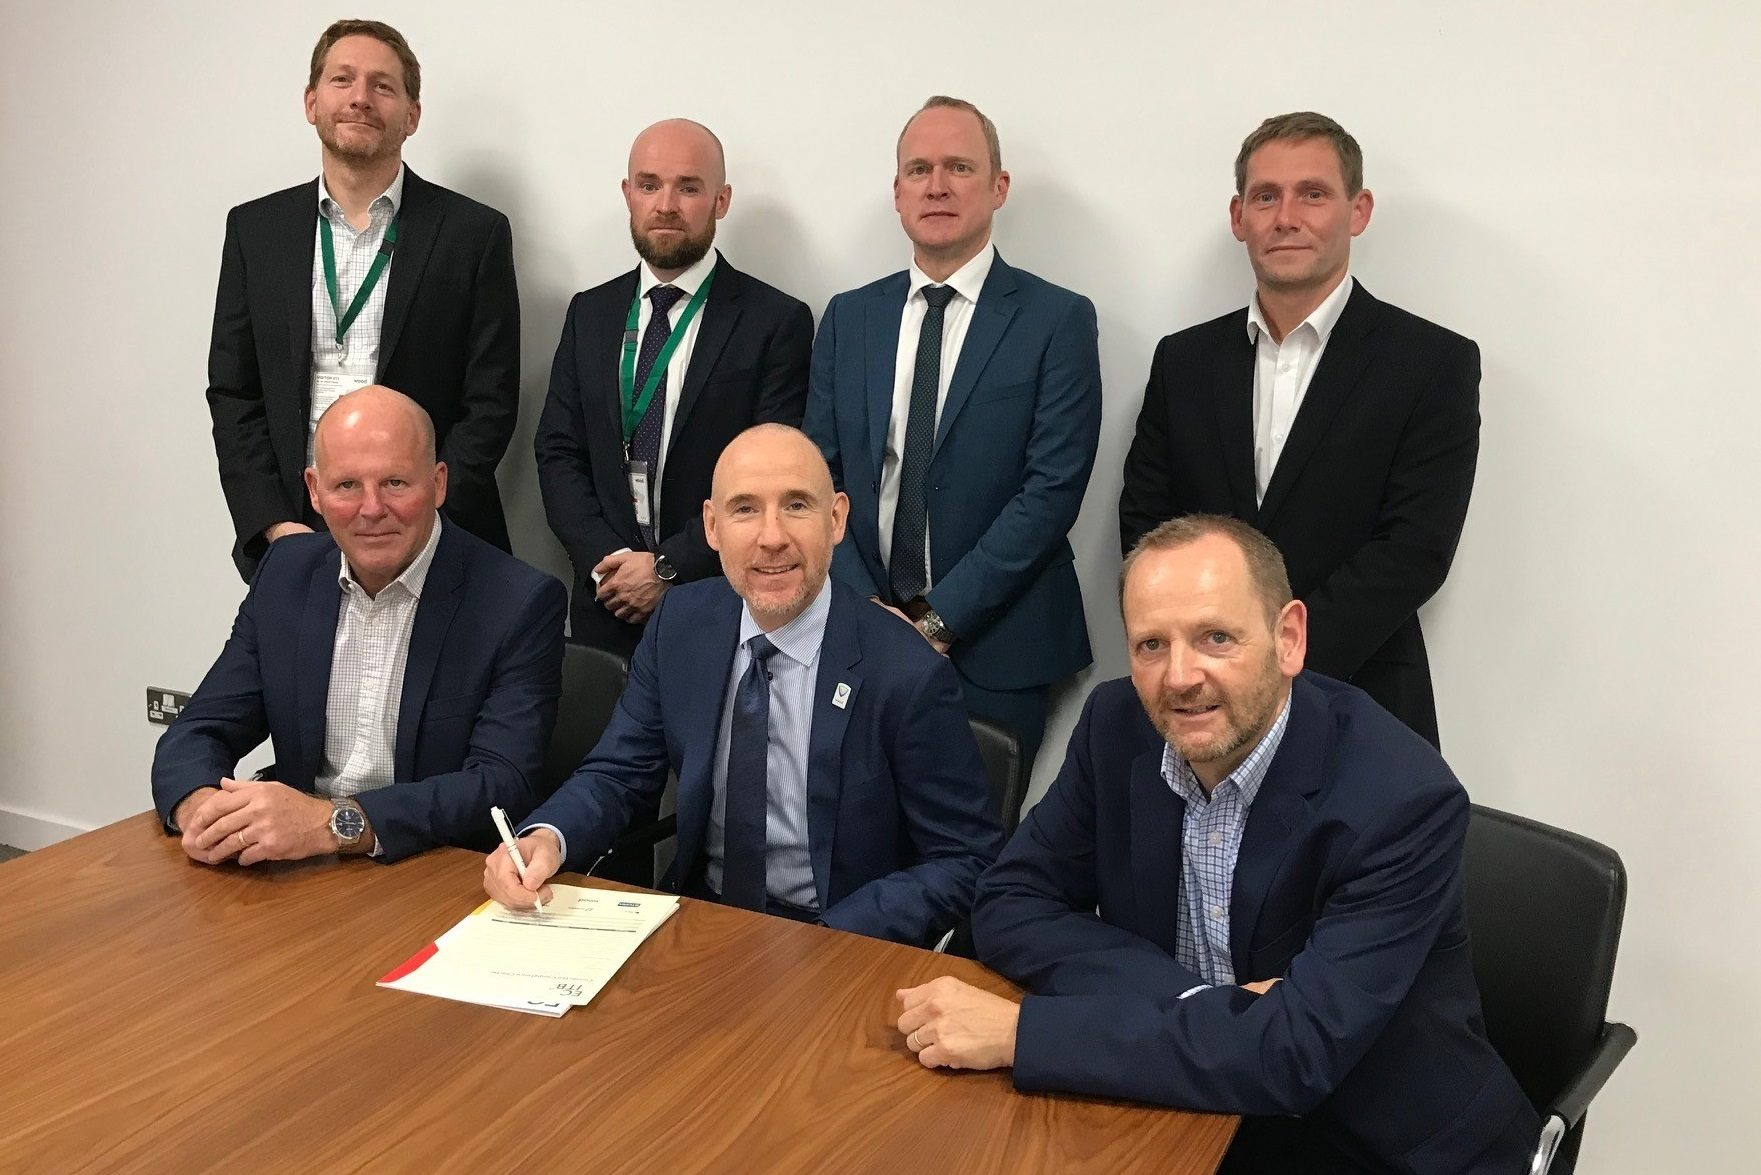 Members of the industry council sign the charter supporting connected competence